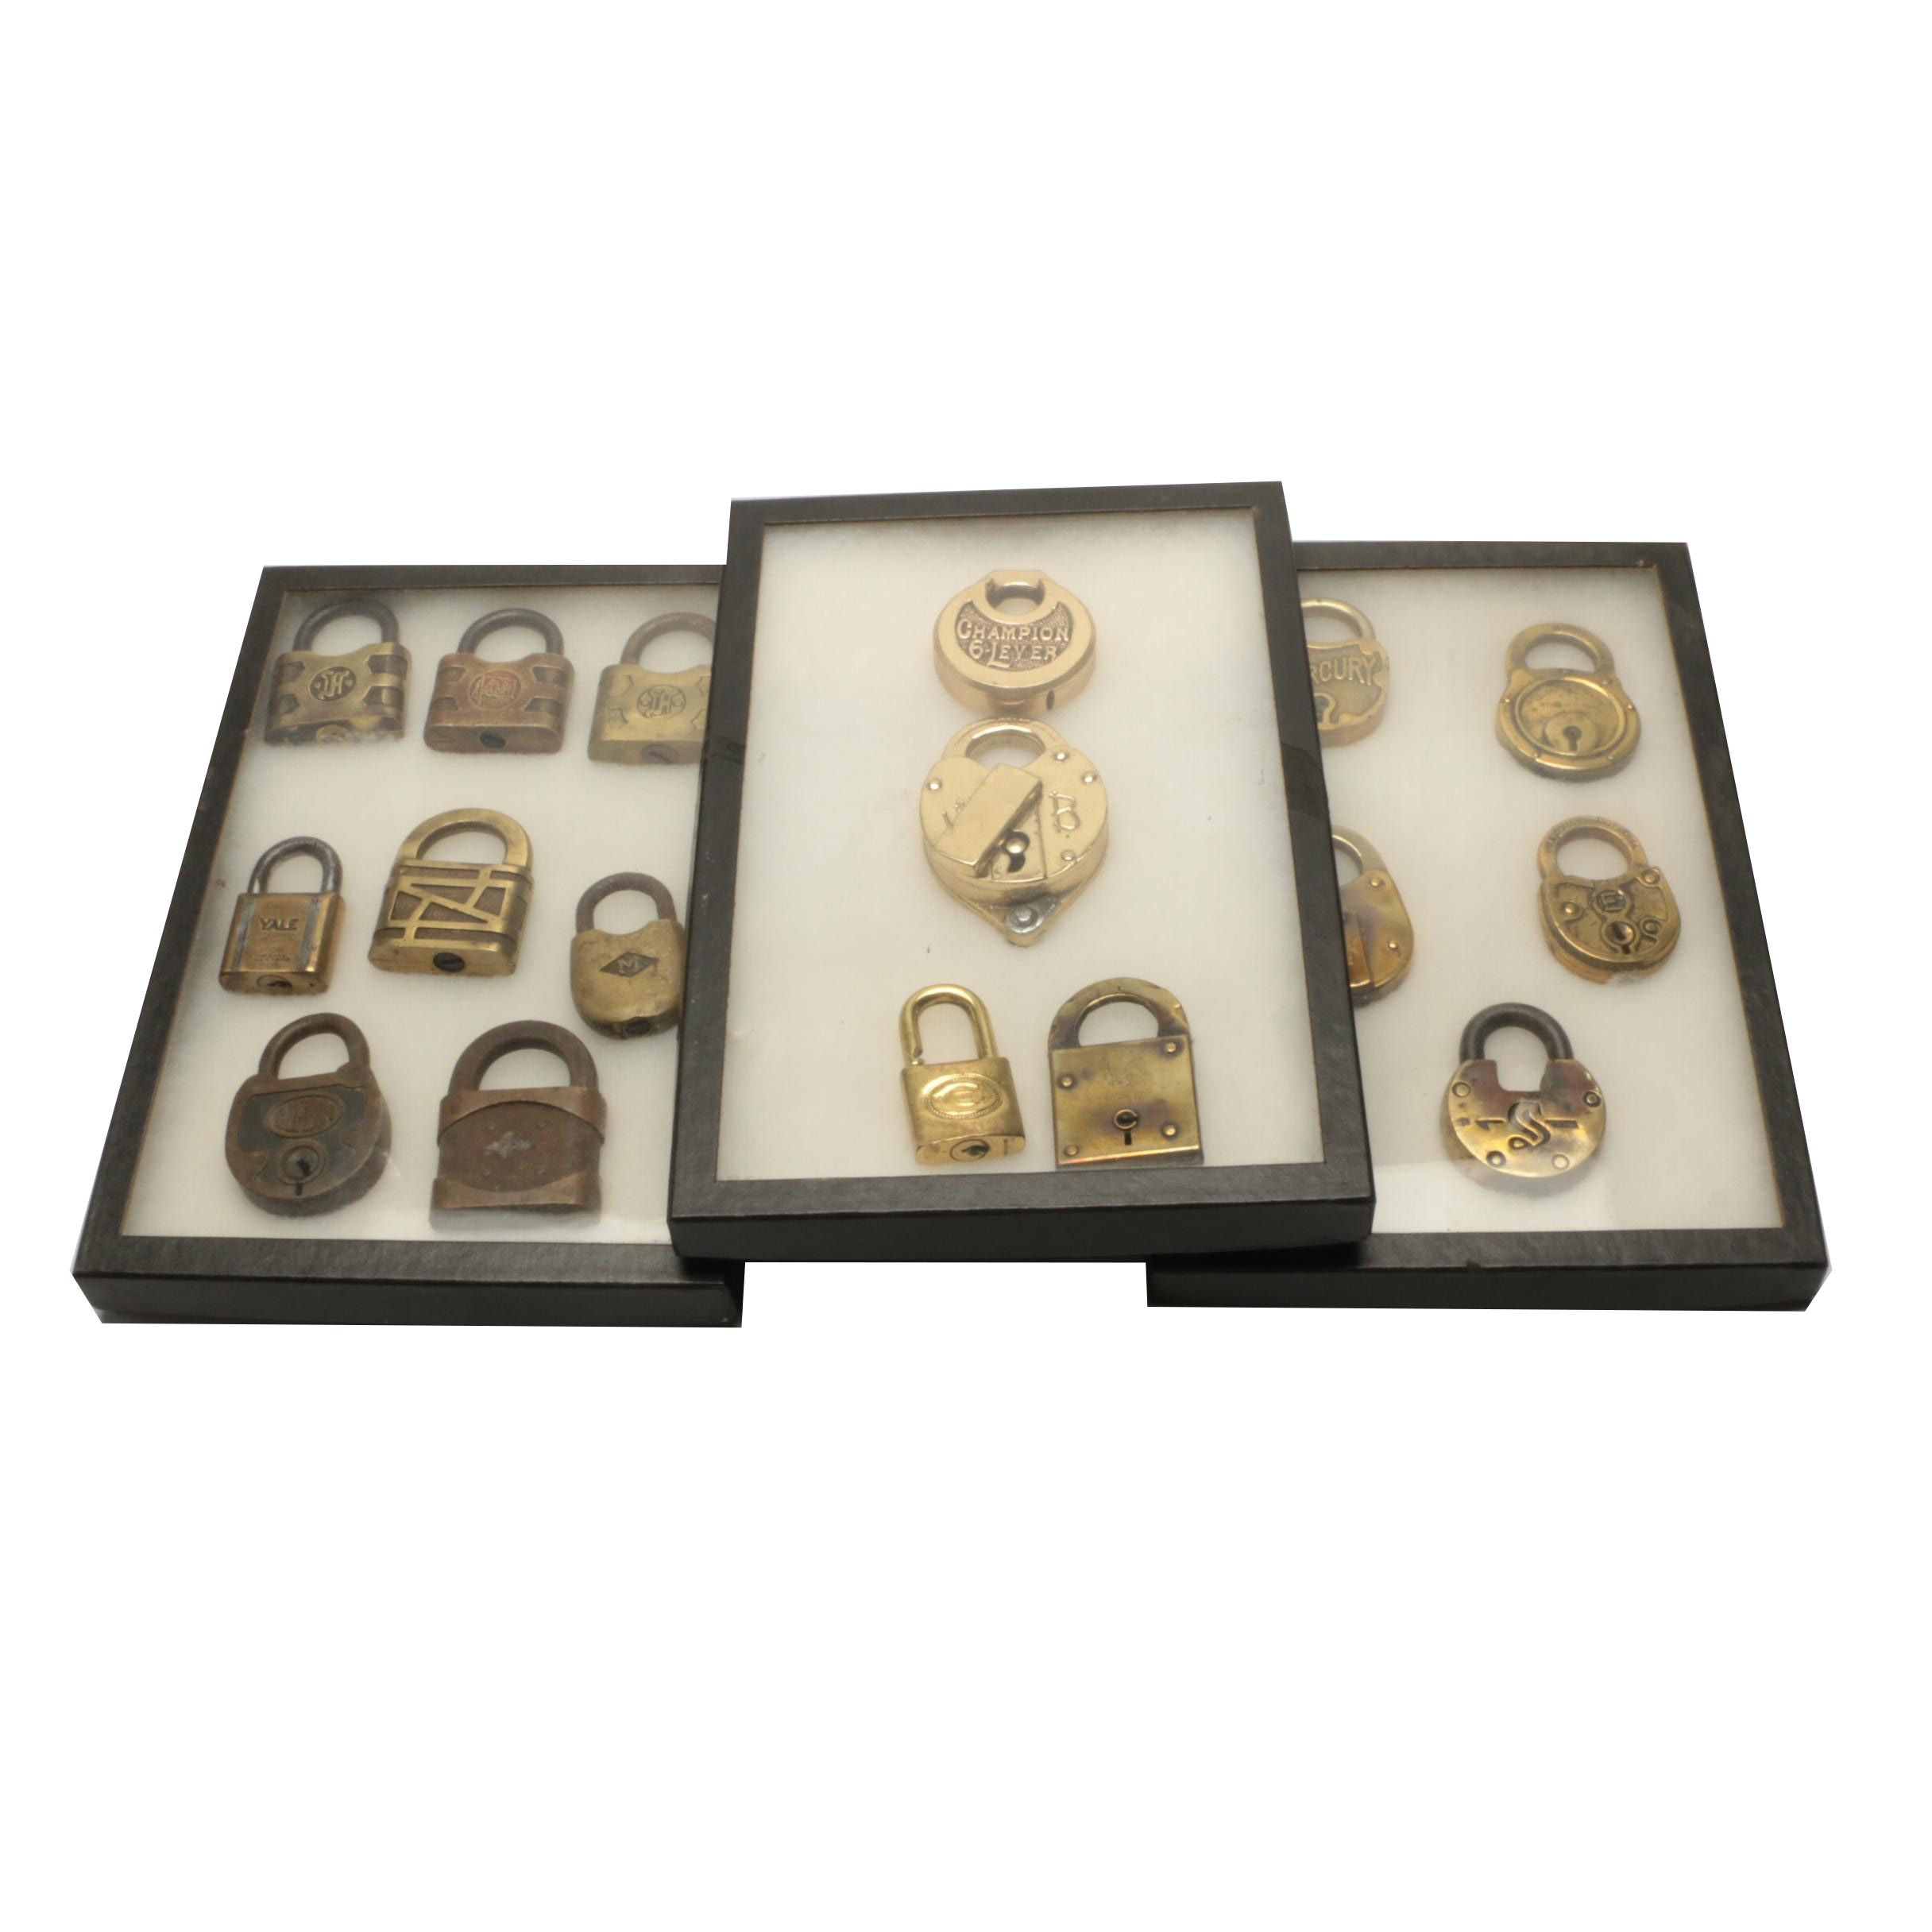 Vintage Pad Lock Collection in Display Cases